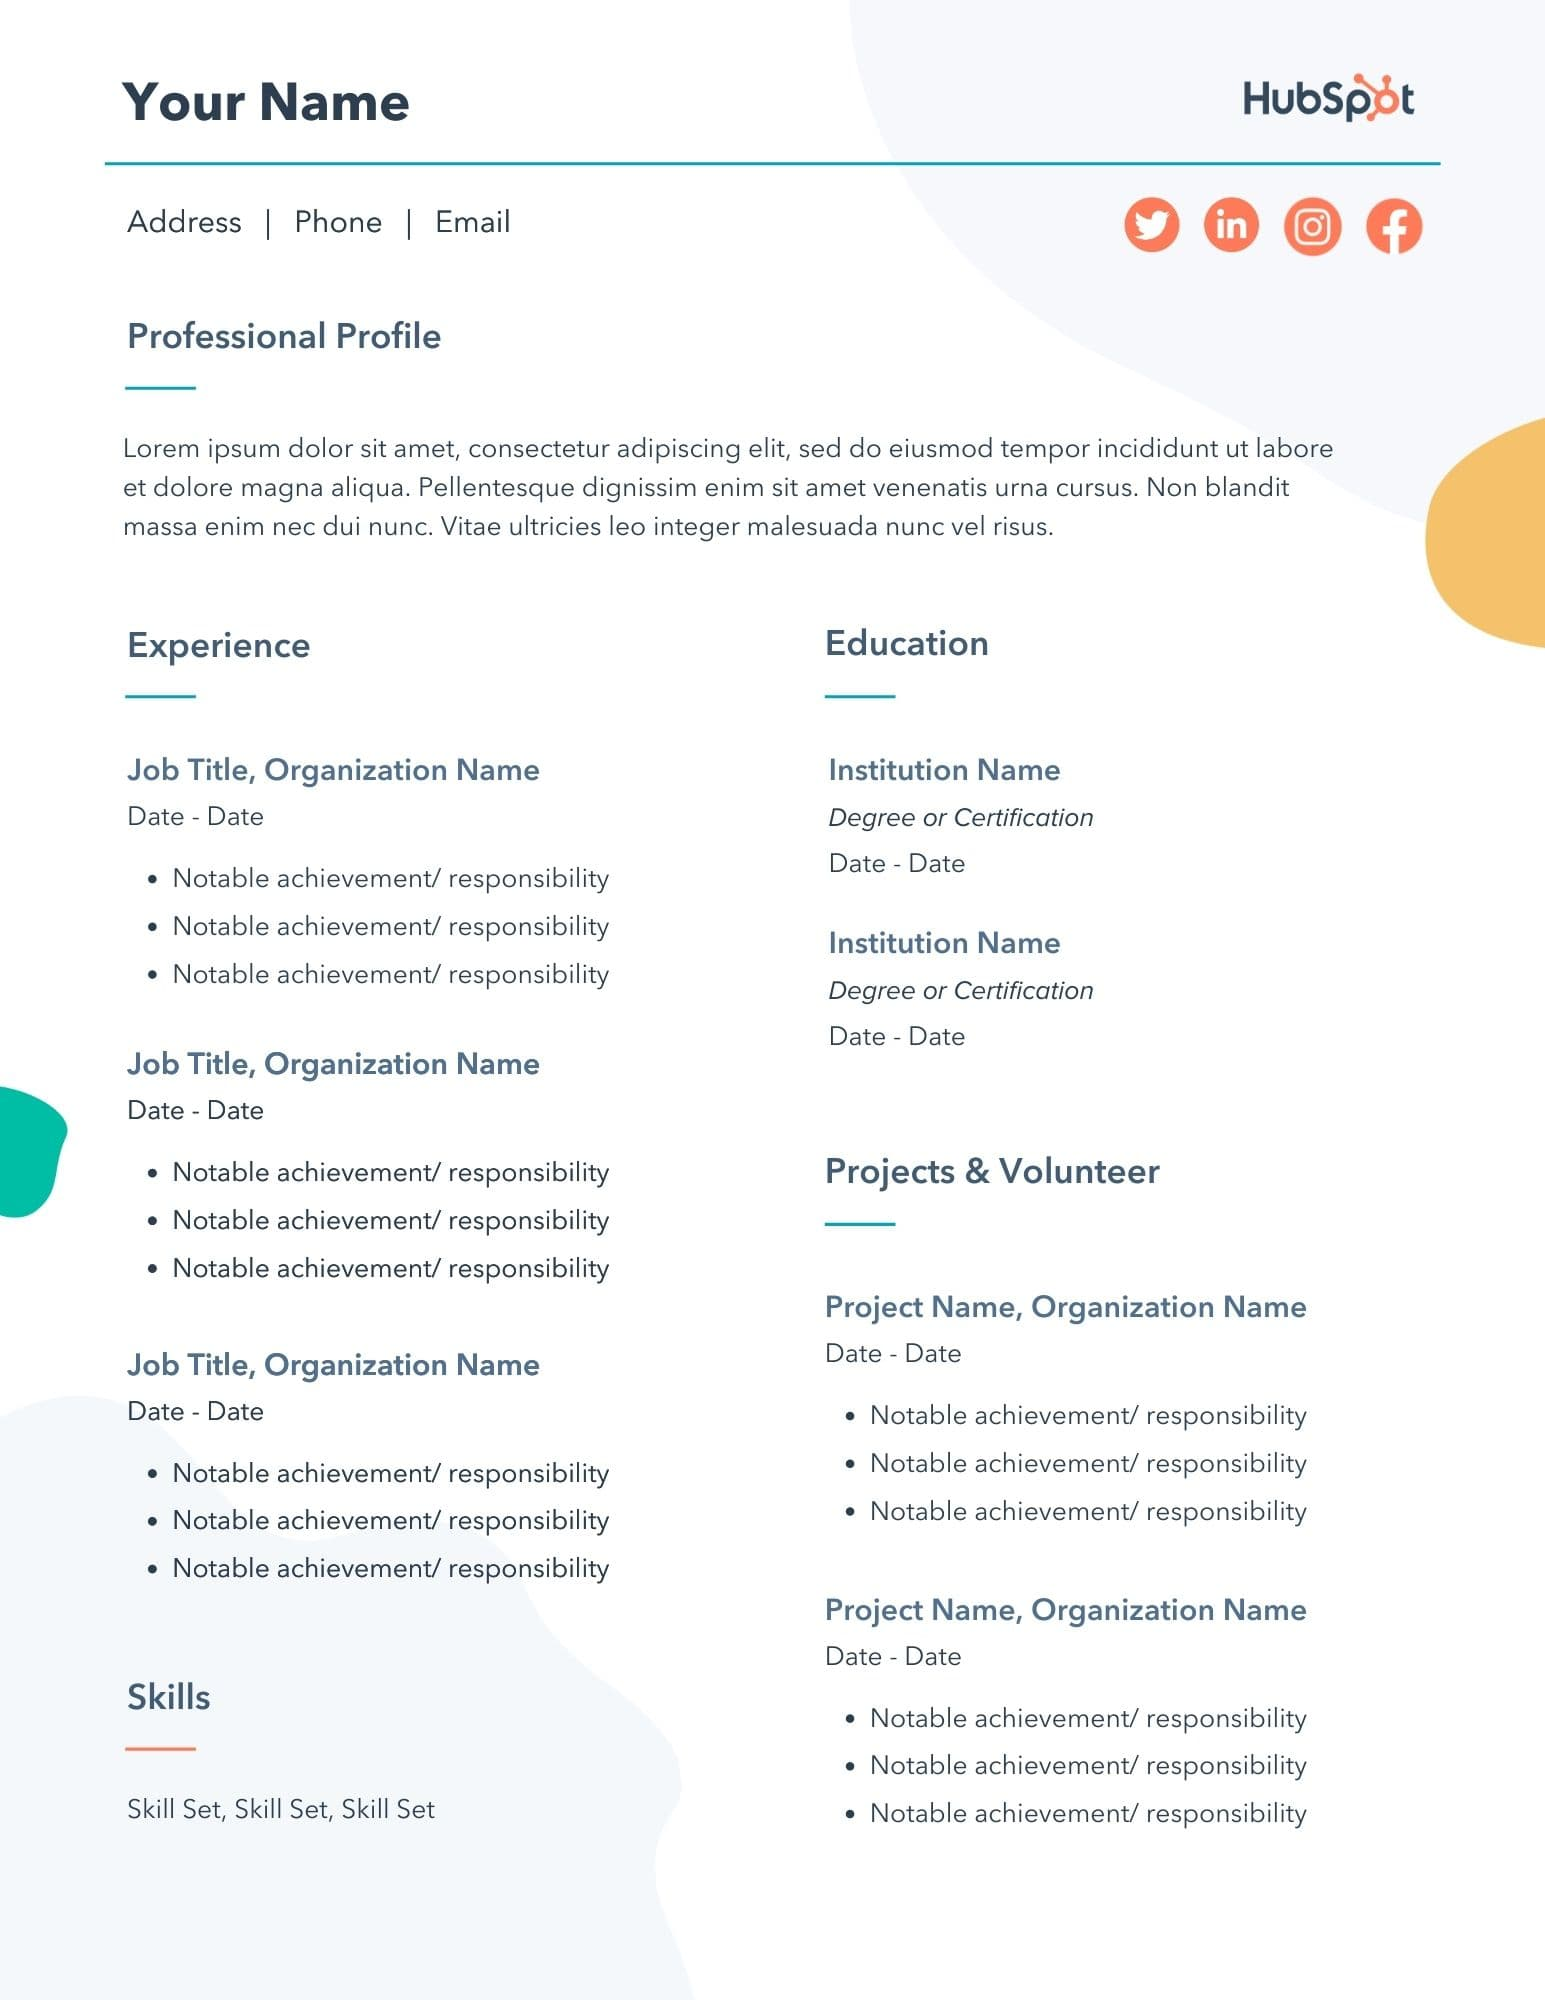 free resume templates for microsoft word to make your own job format template college Resume A Job Resume Format